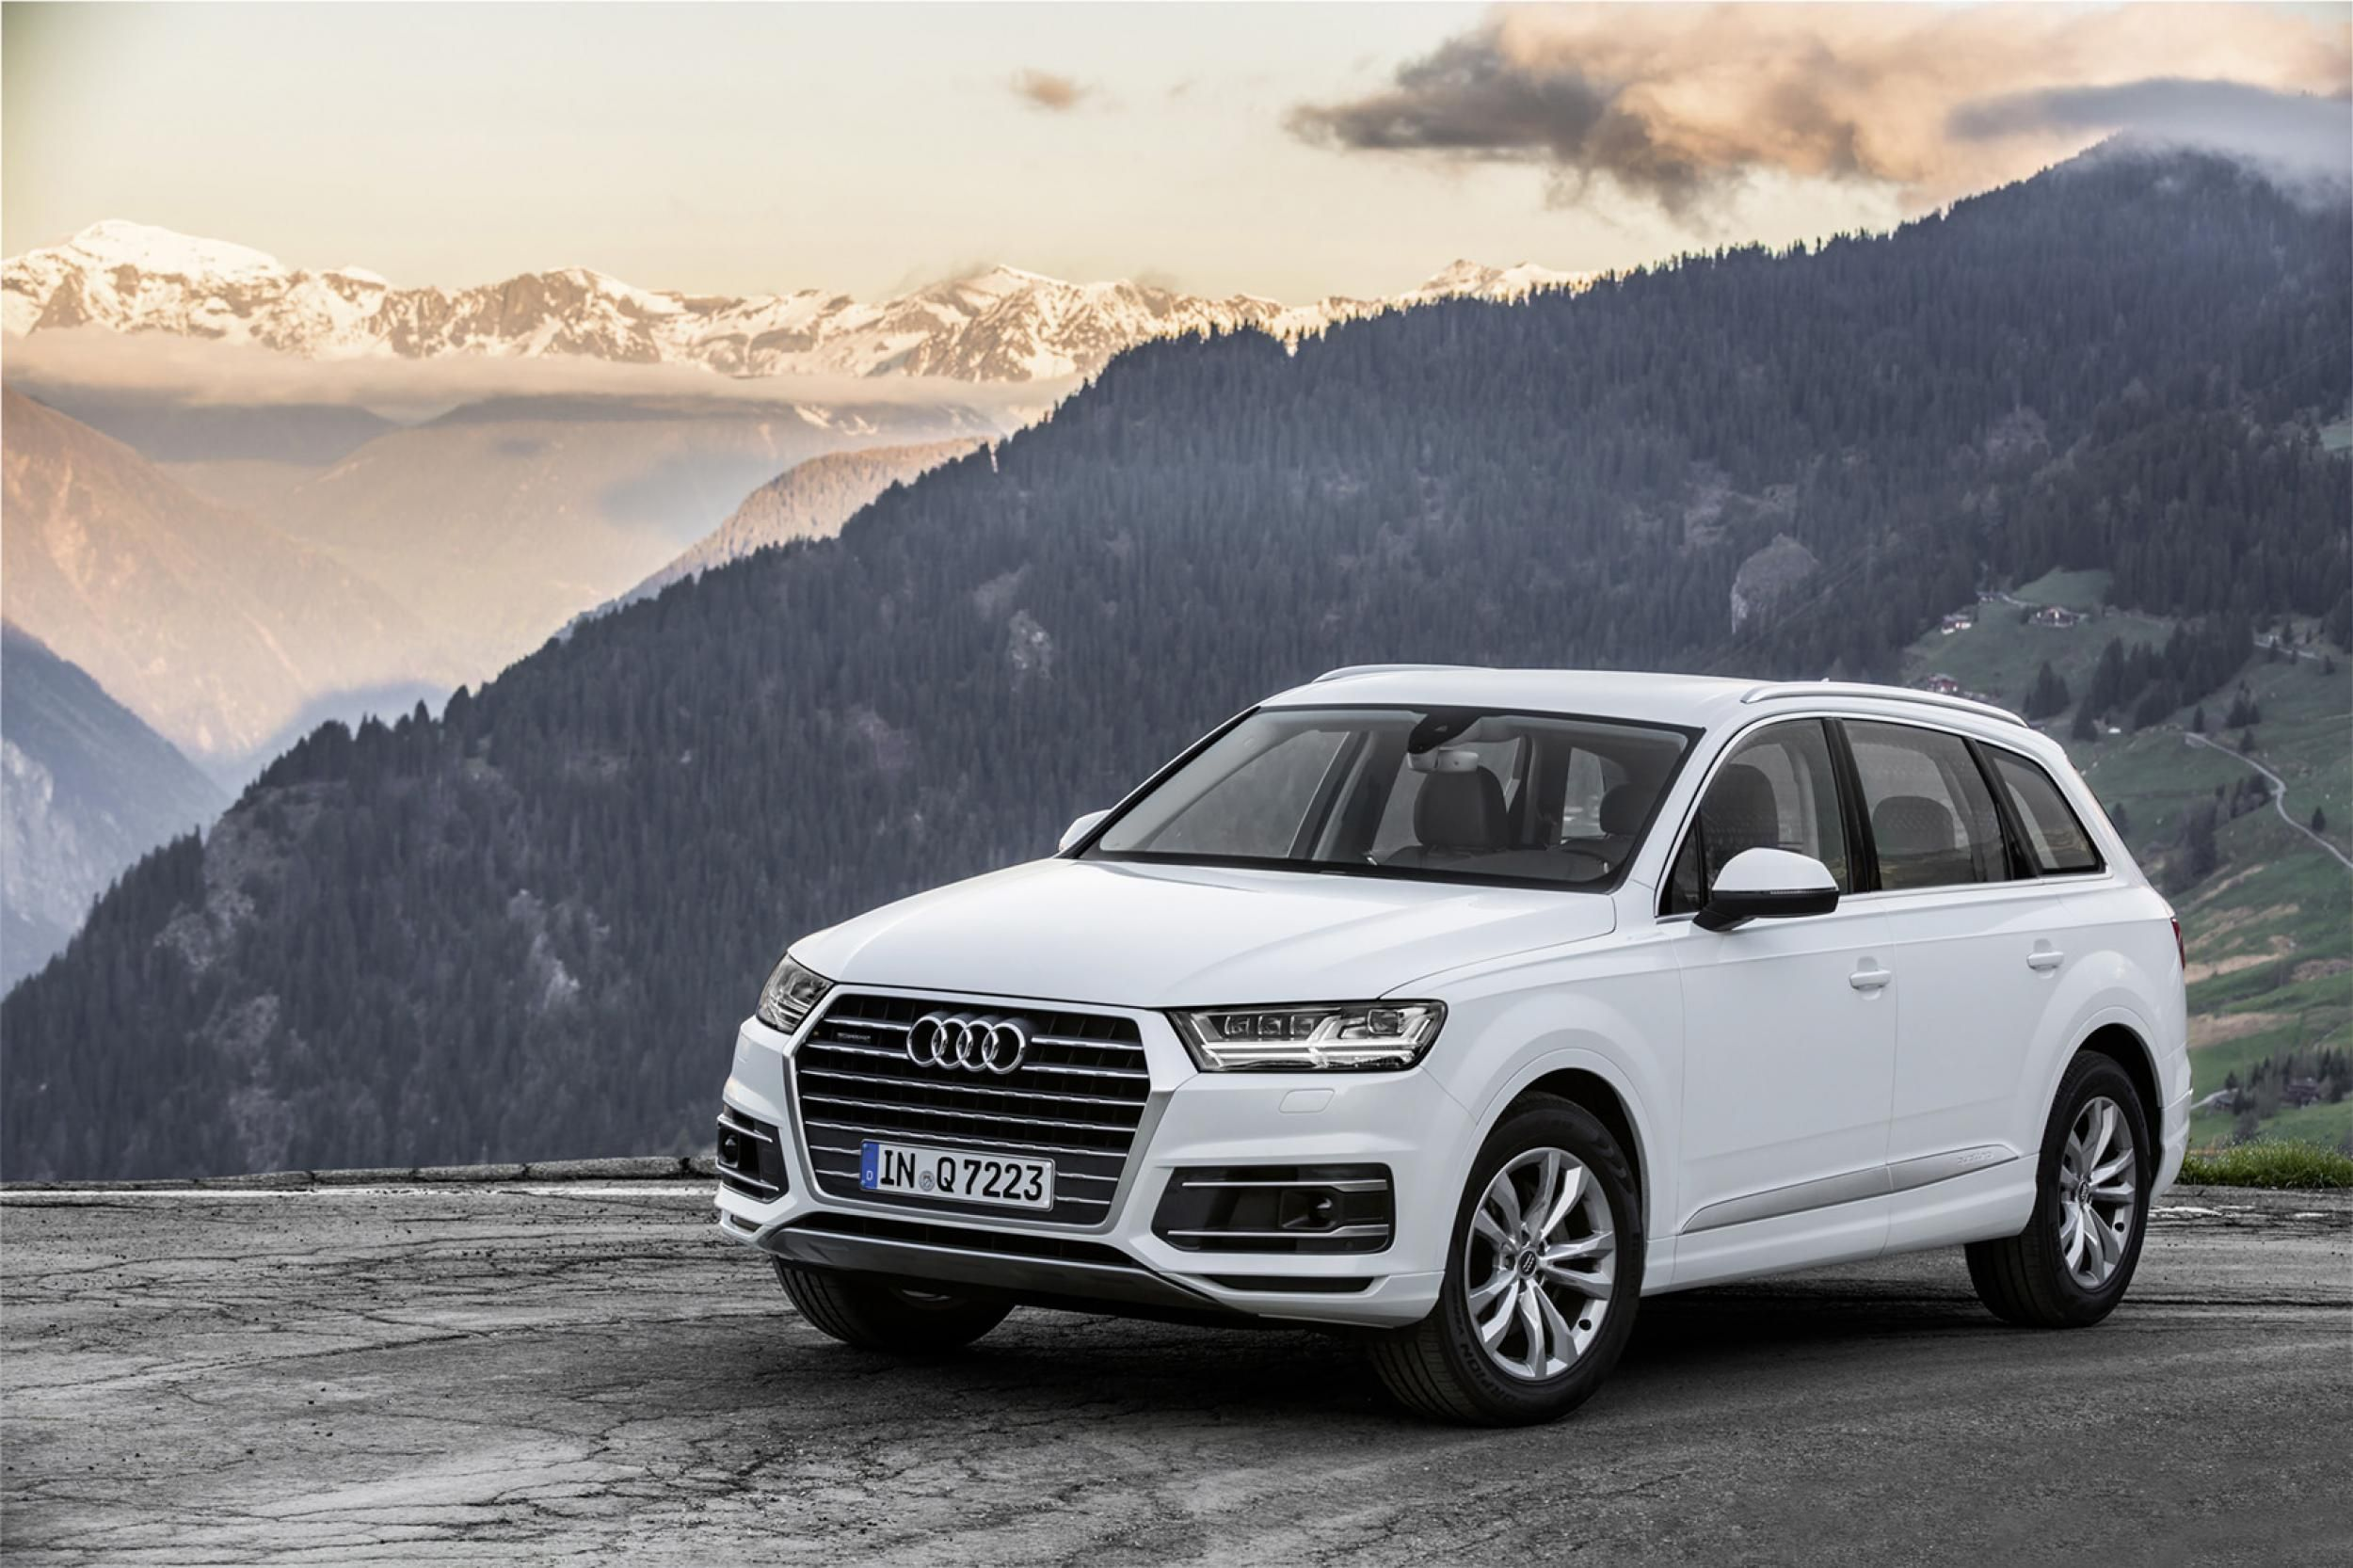 Audi Q7 2017 White 2177069 Hd Wallpaper Backgrounds